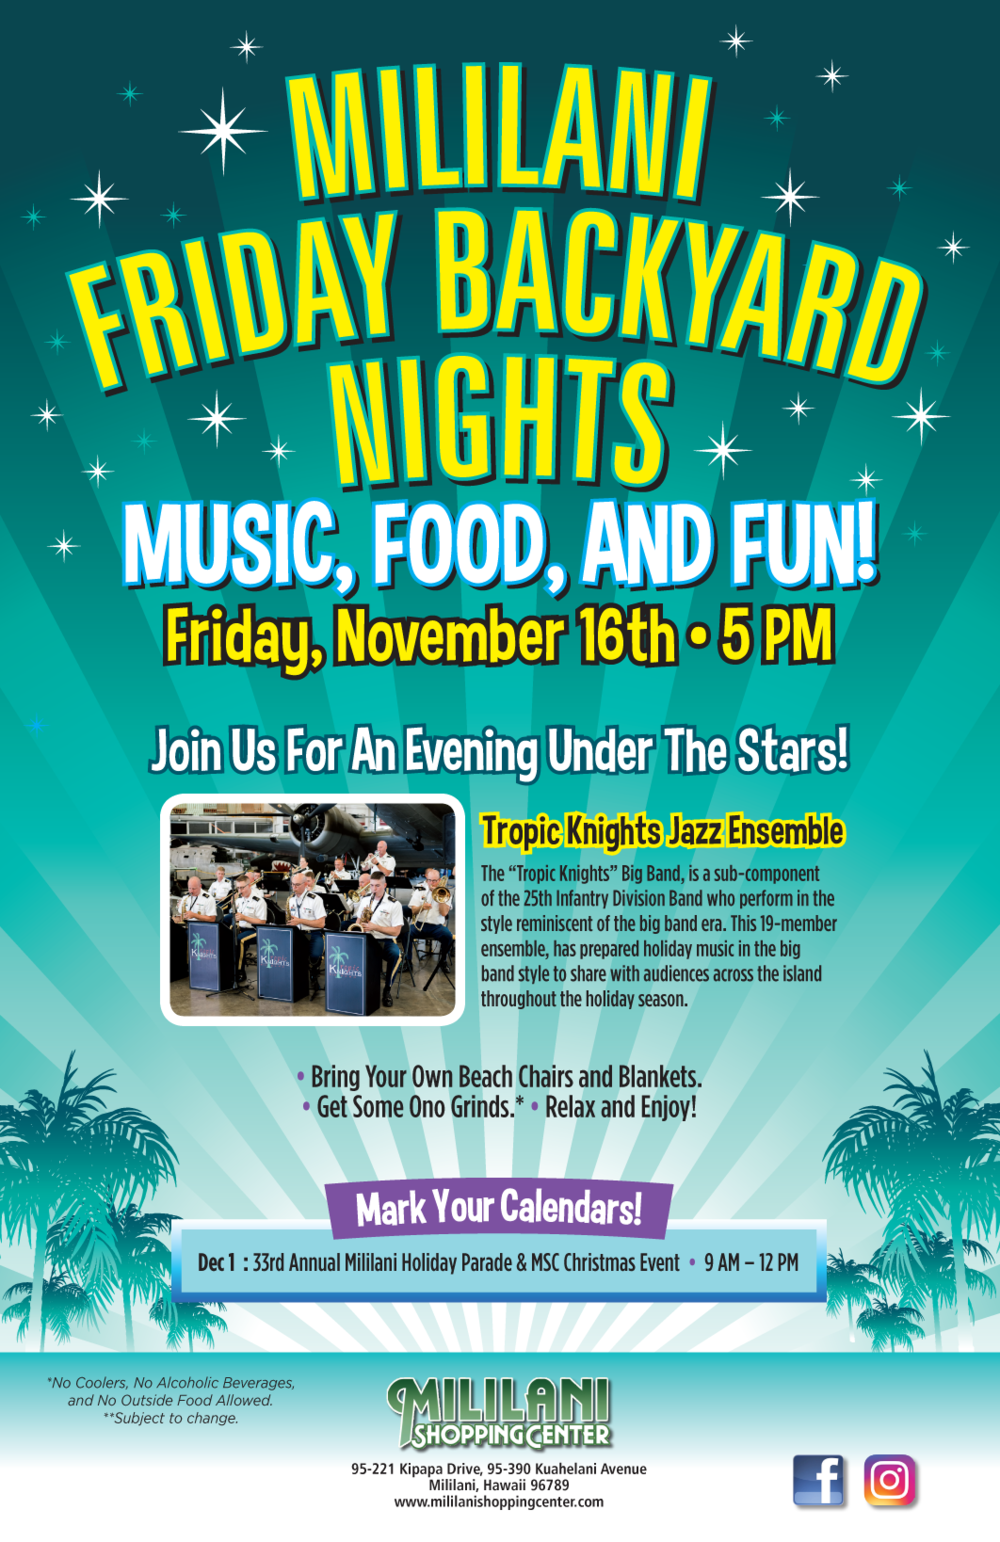 MSC-backyardnights-poster-101818.png